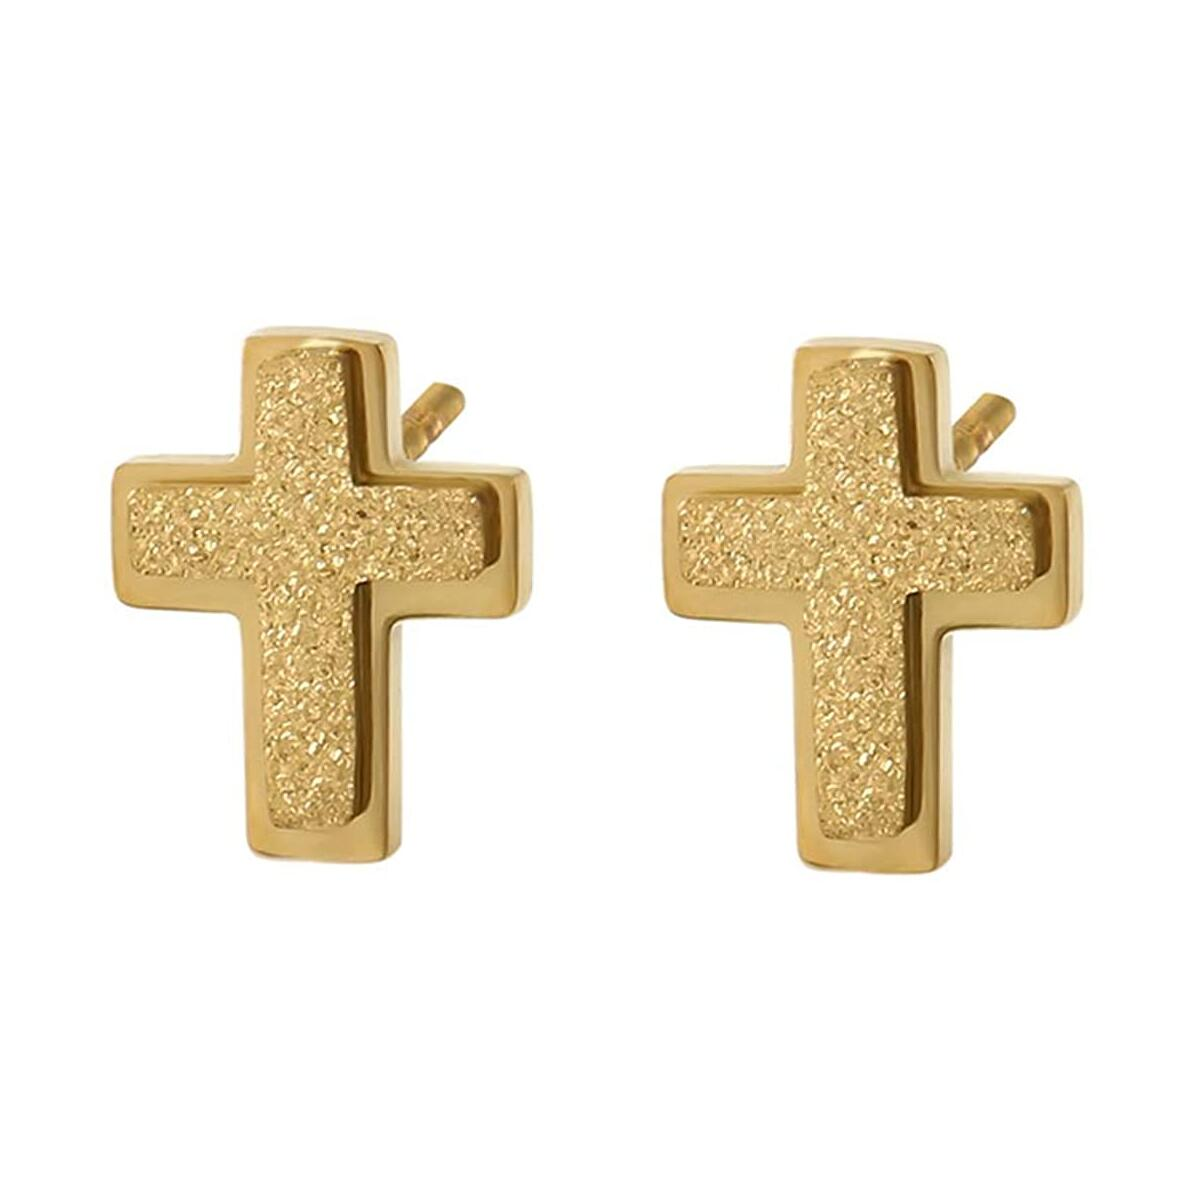 Ya Malanii 14K Gold Cross stud Earrings for women and girls